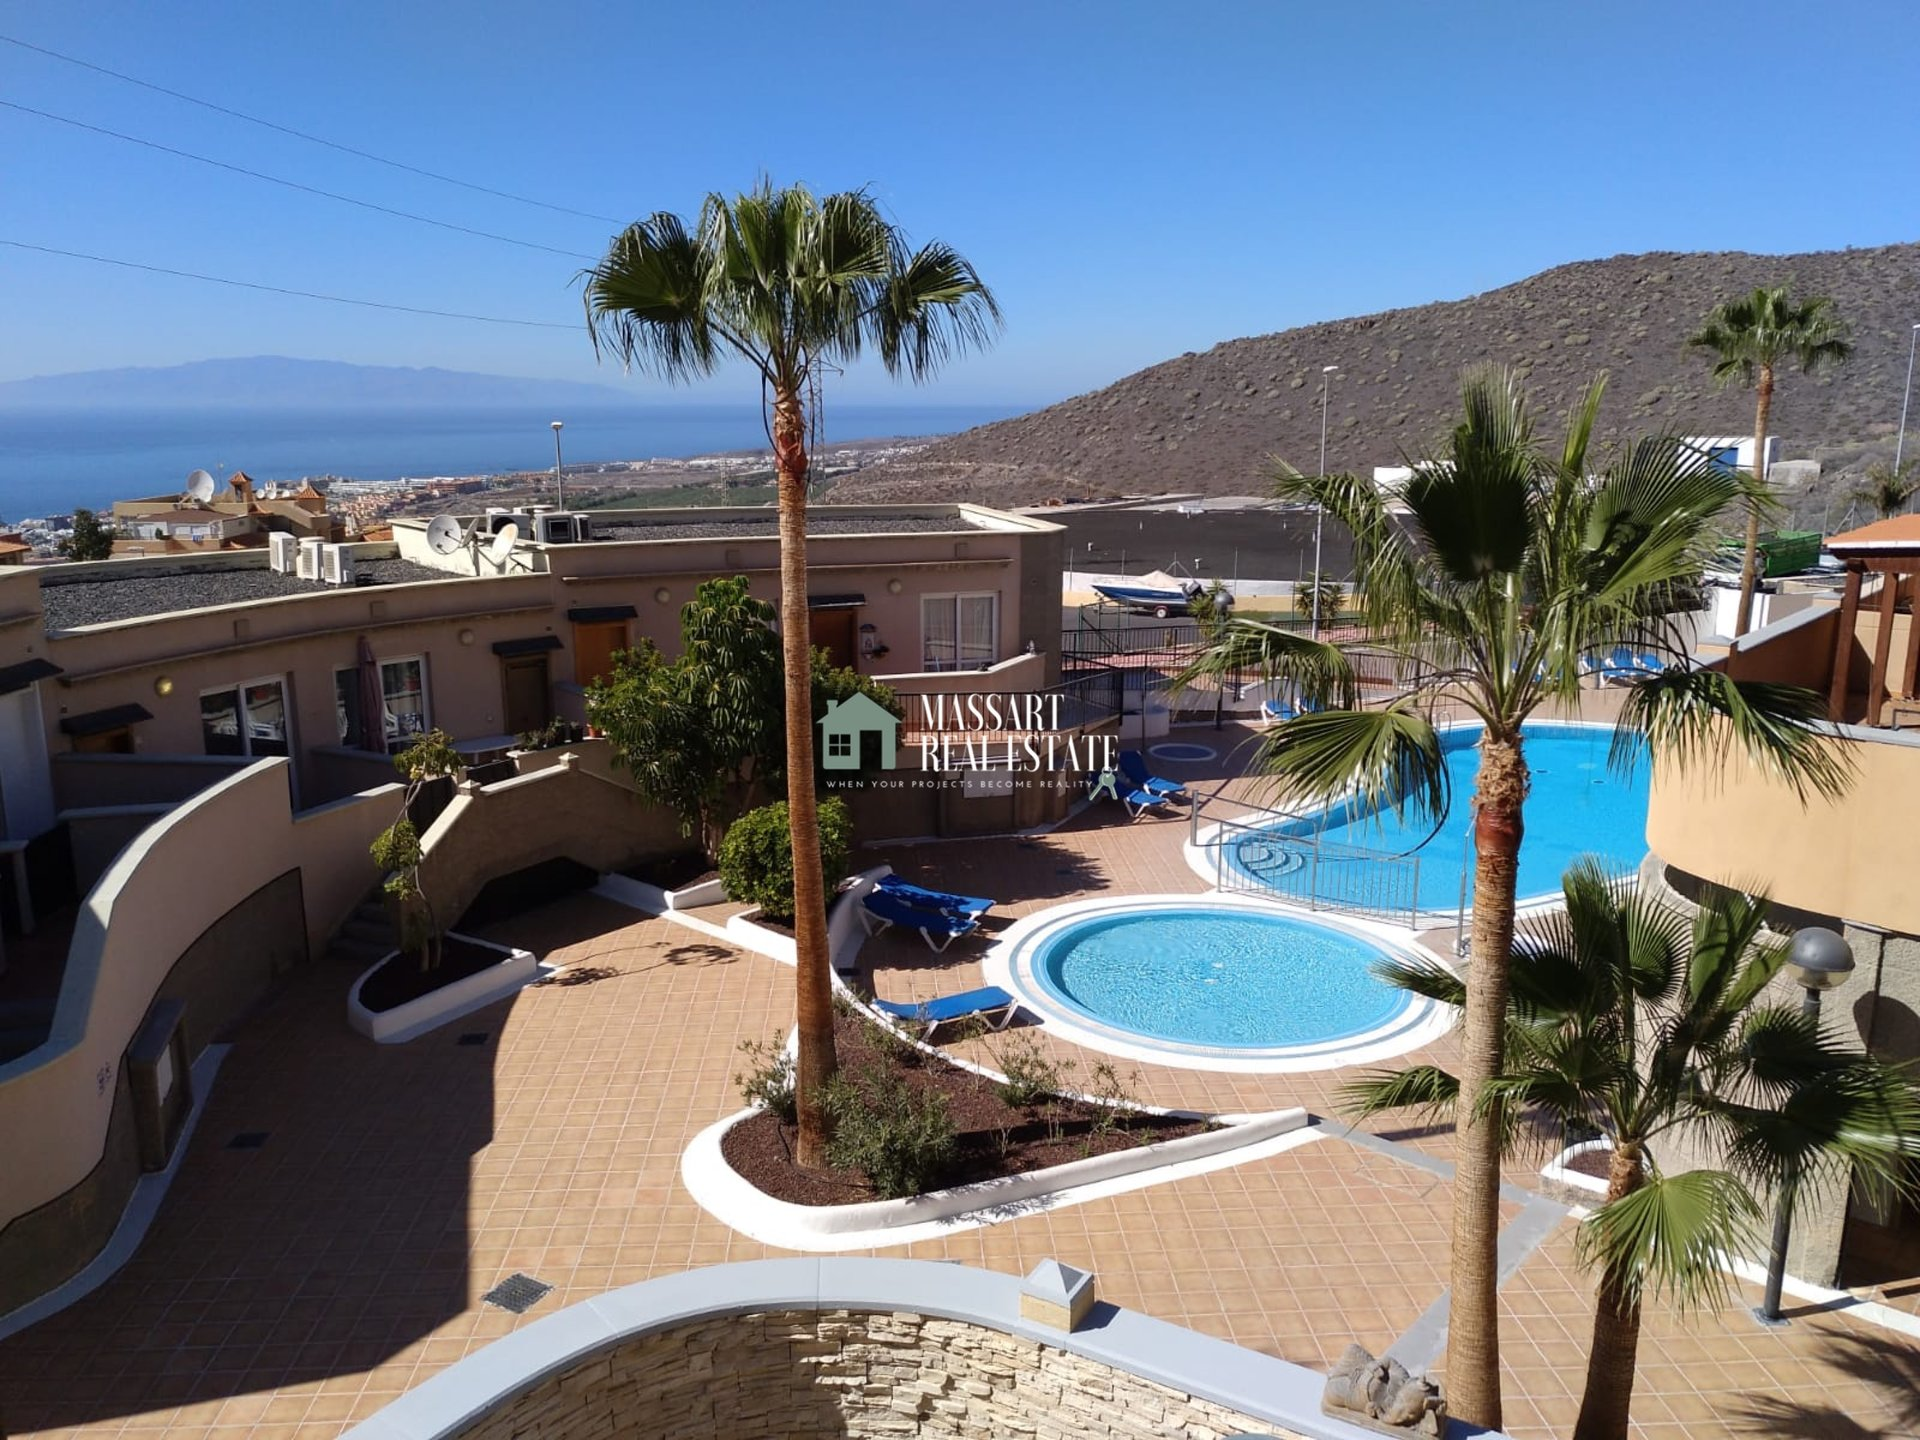 Wonderful semi-detached house of 150 m2 for rent in Torviscas Alto (Adeje) characterized by offering privileged views of the sea and the island of La Gomera.